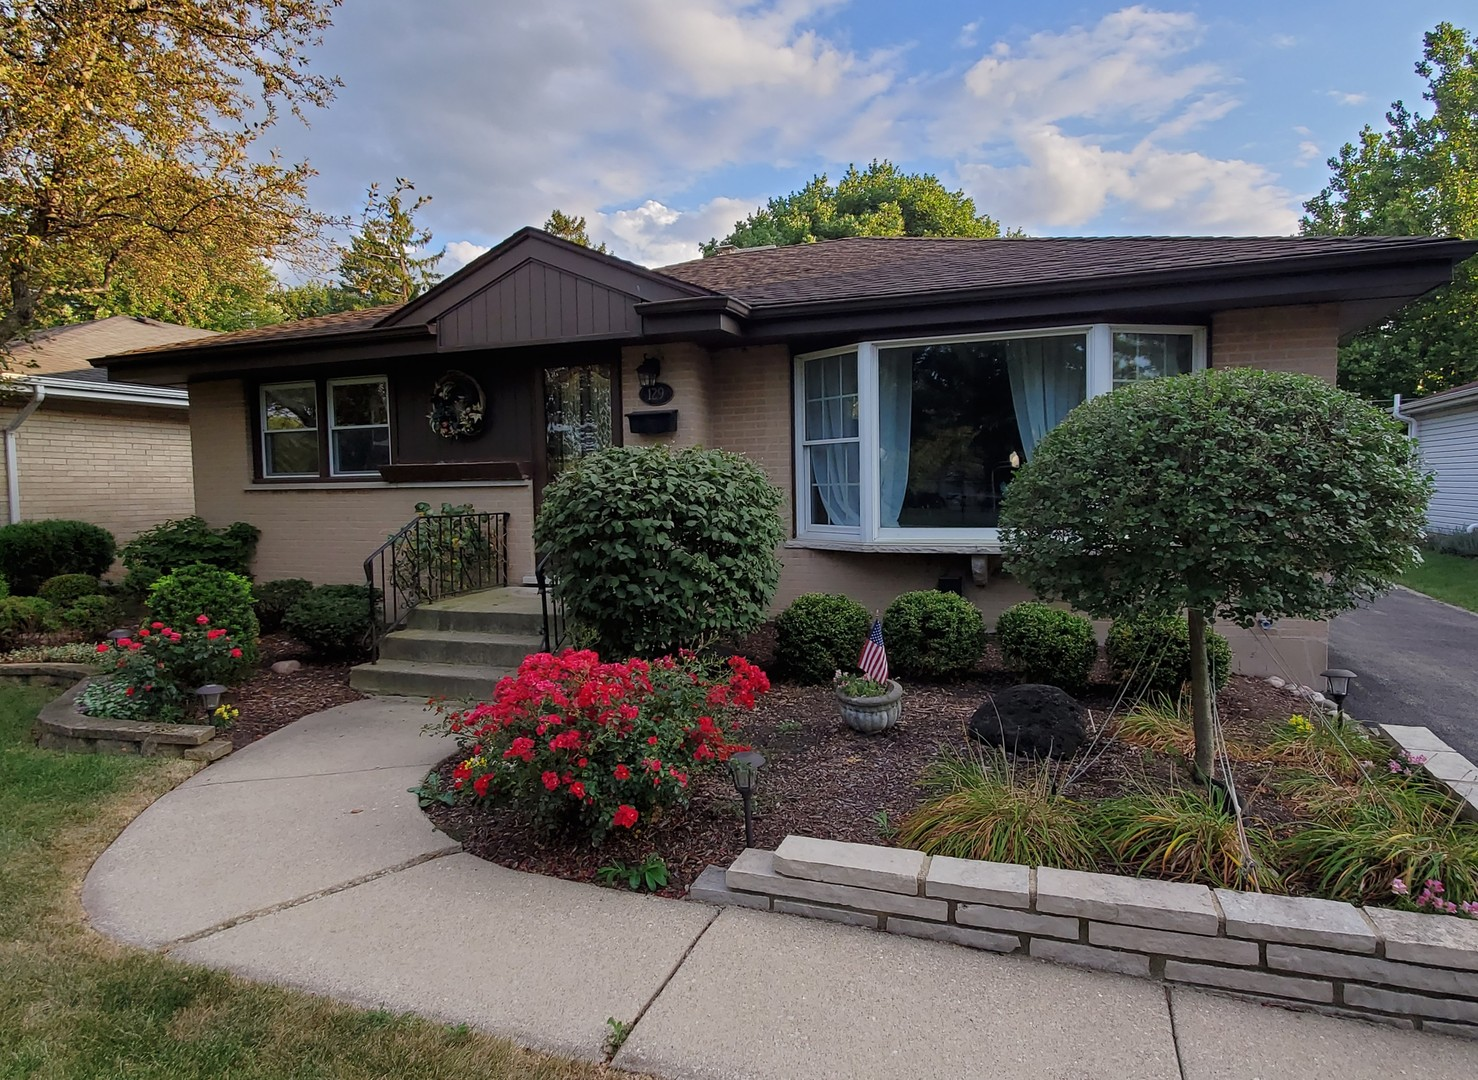 Photo for 129 W Hattendorf Avenue, Roselle, IL 60172 (MLS # 10822767)